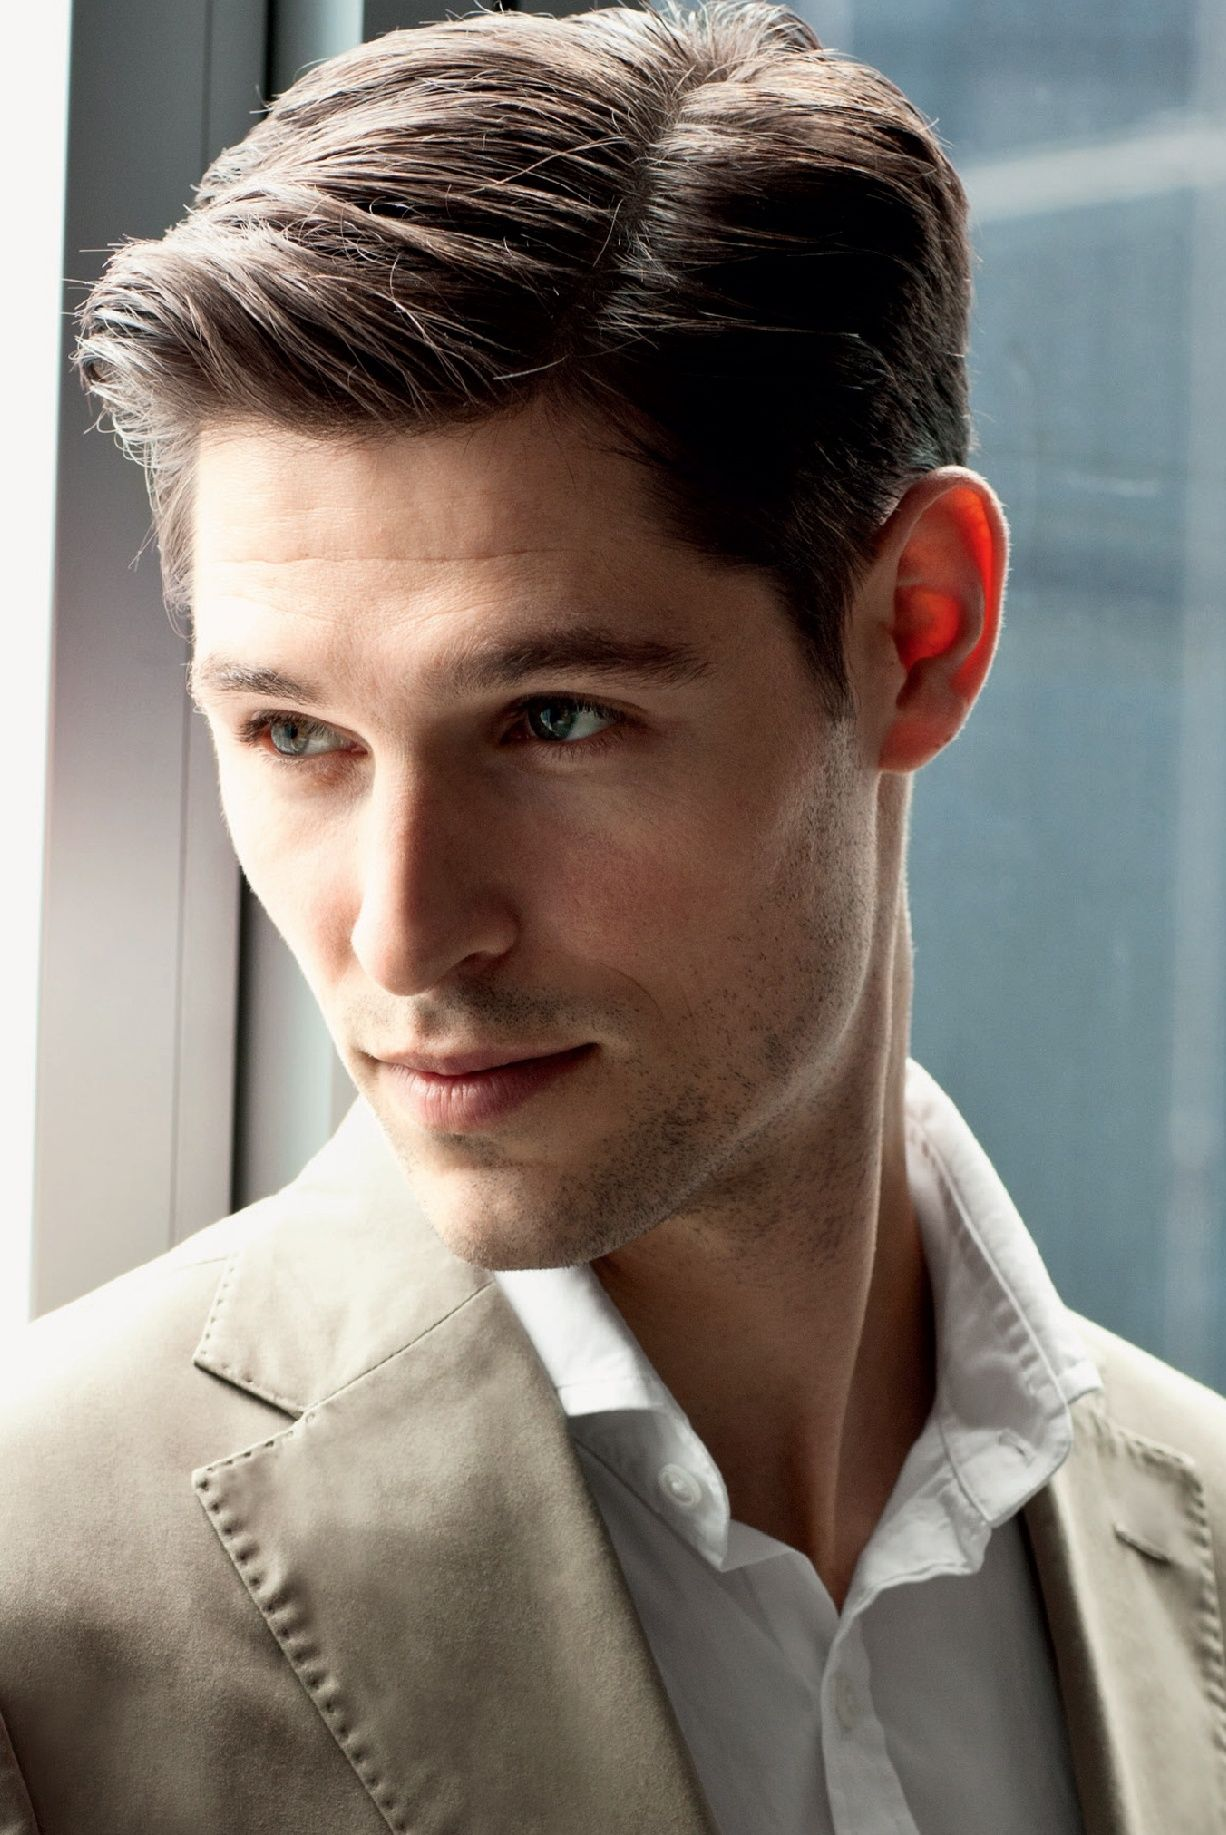 Mens Hairstyle From The S S Hairstyles For Men Best - Men's hairstyle gallery 2014